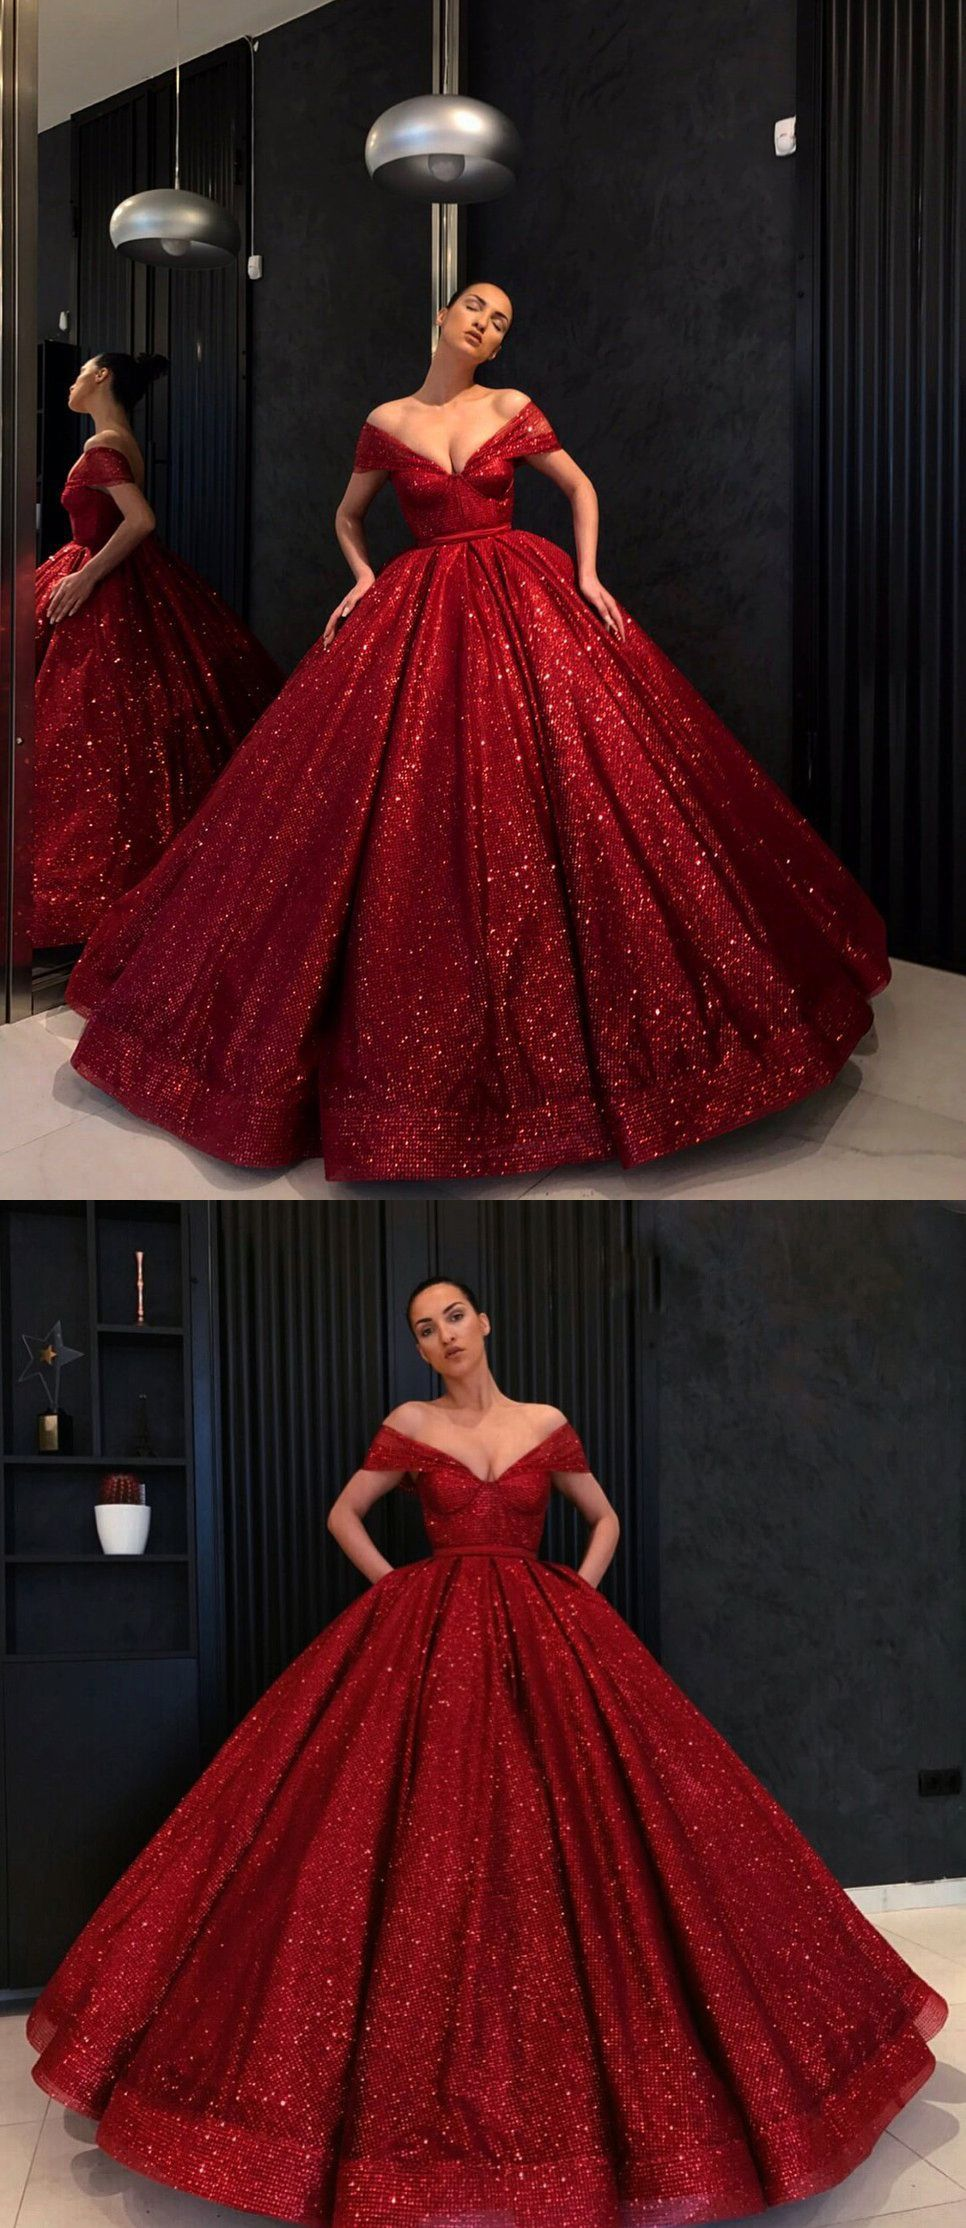 To acquire Ball red dark gown pictures trends